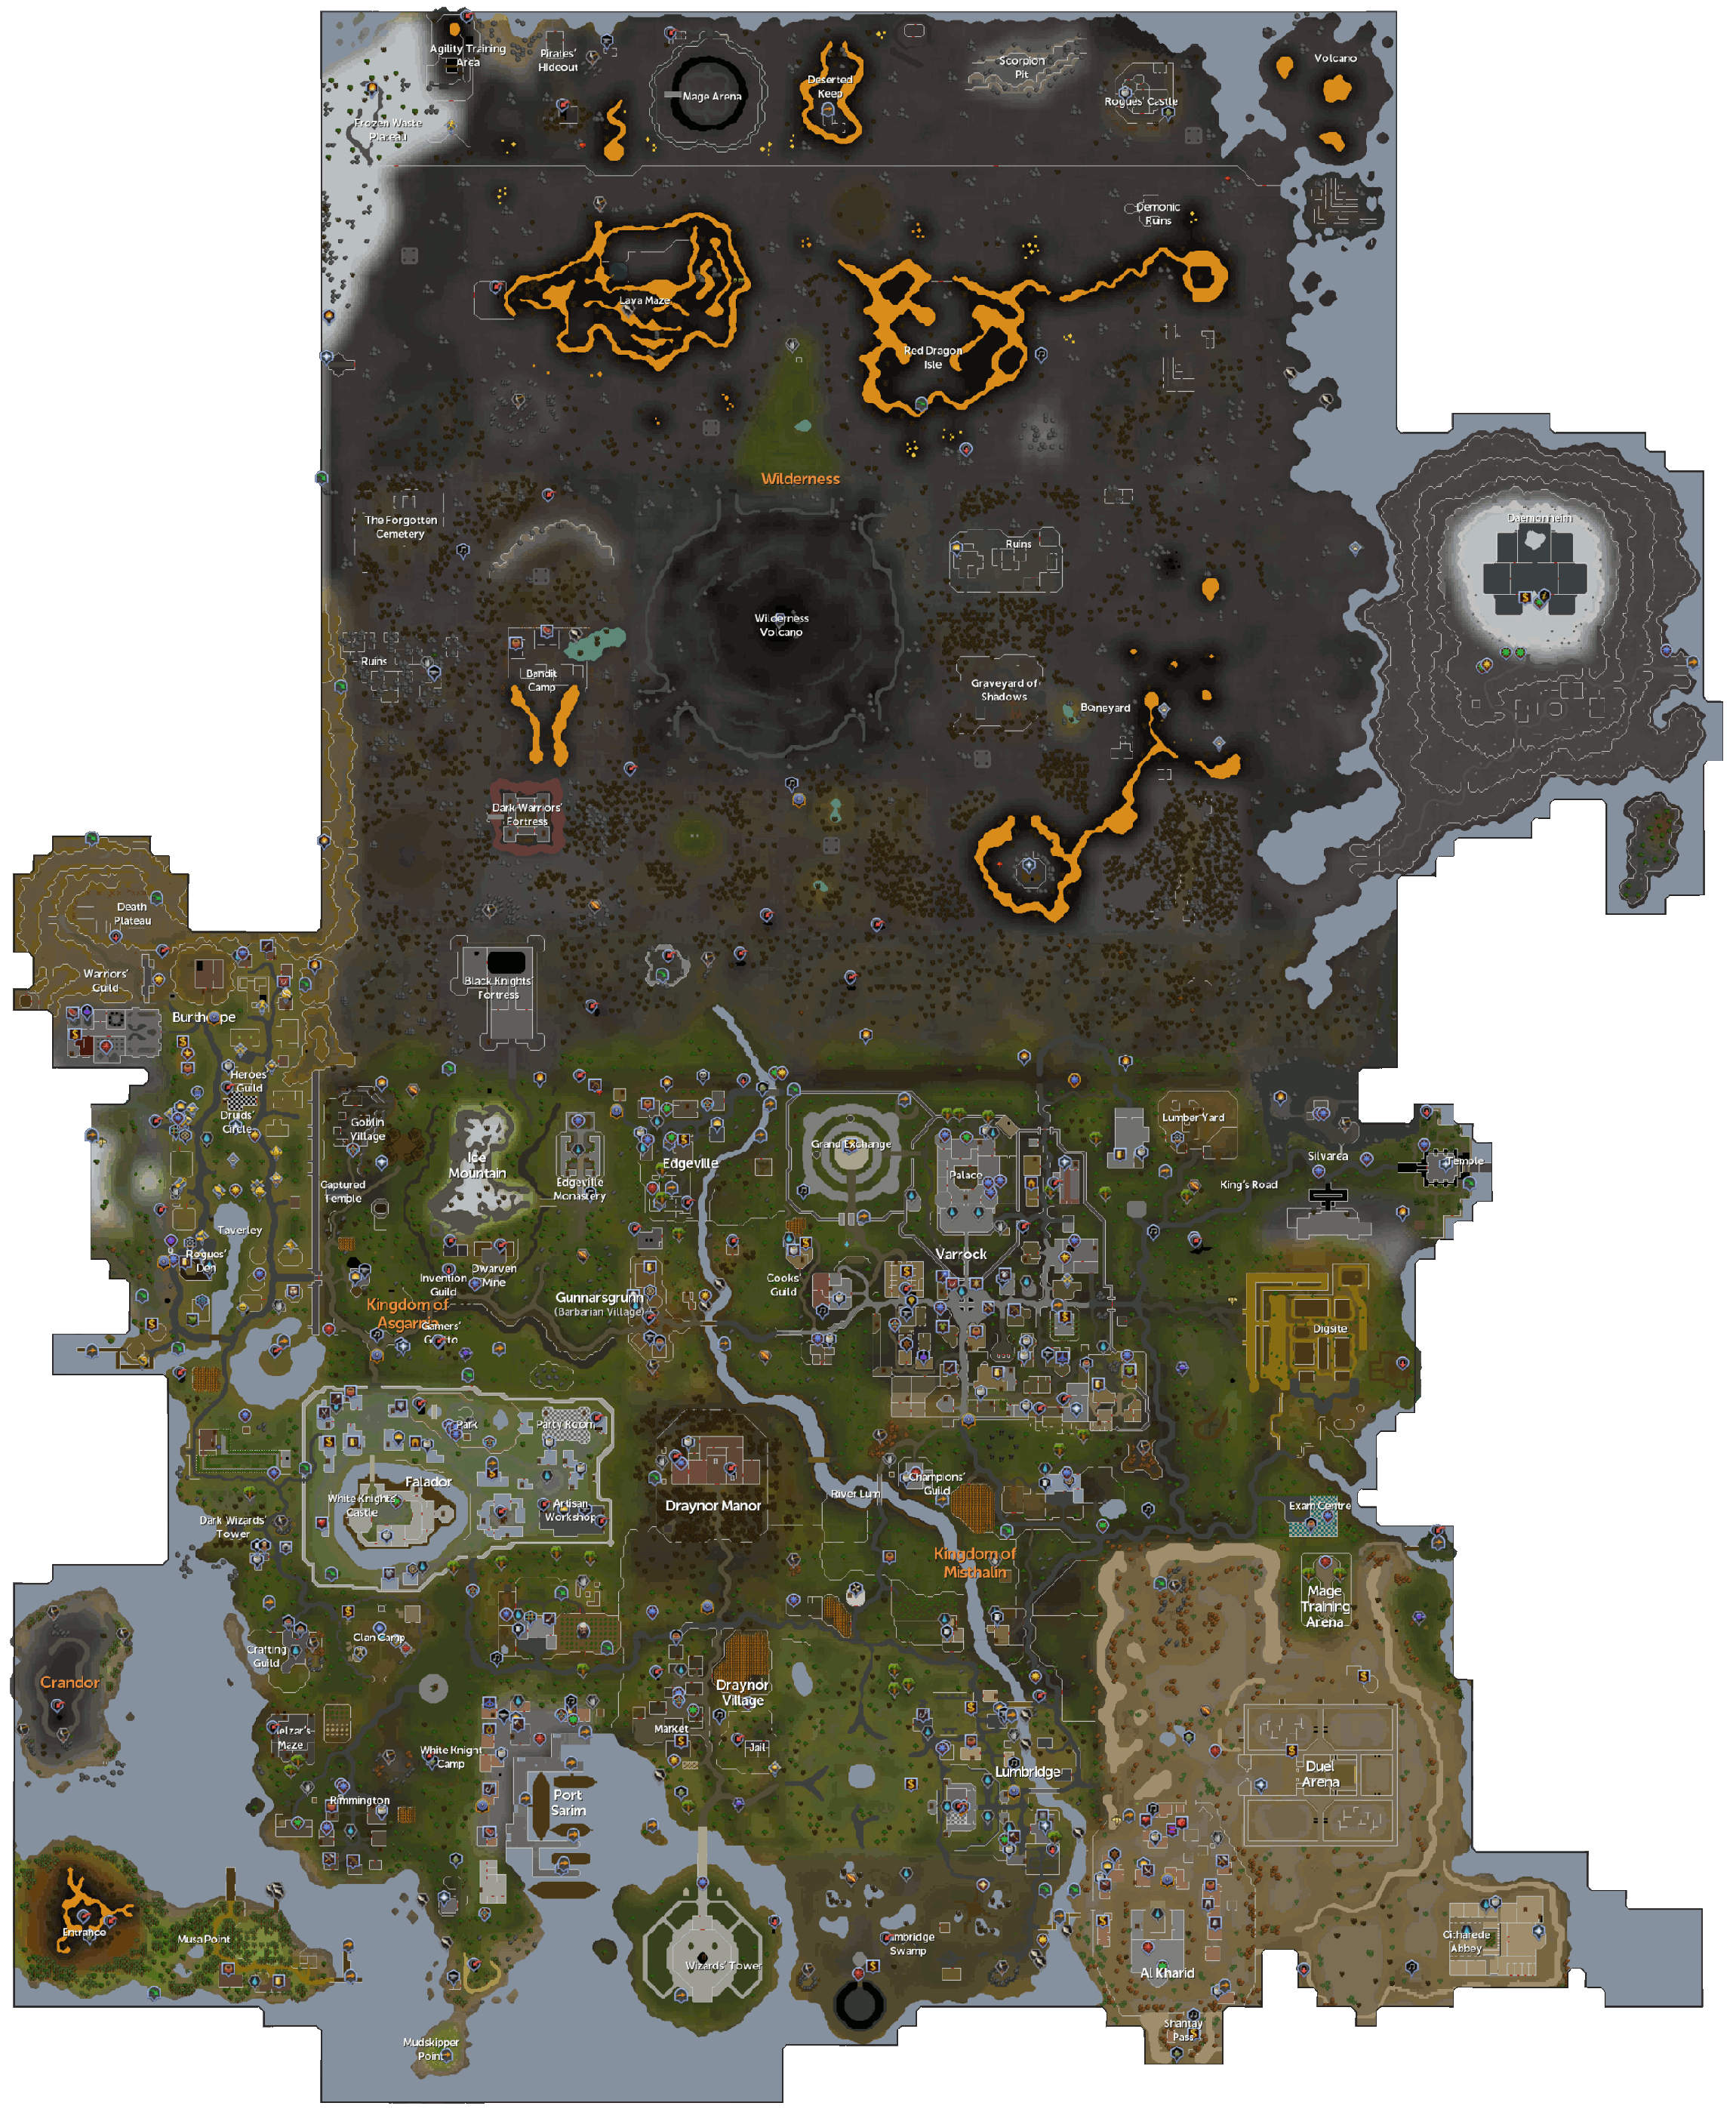 Old Runescape World Map. Rs 2007 Map, Oldschool Runescape ...